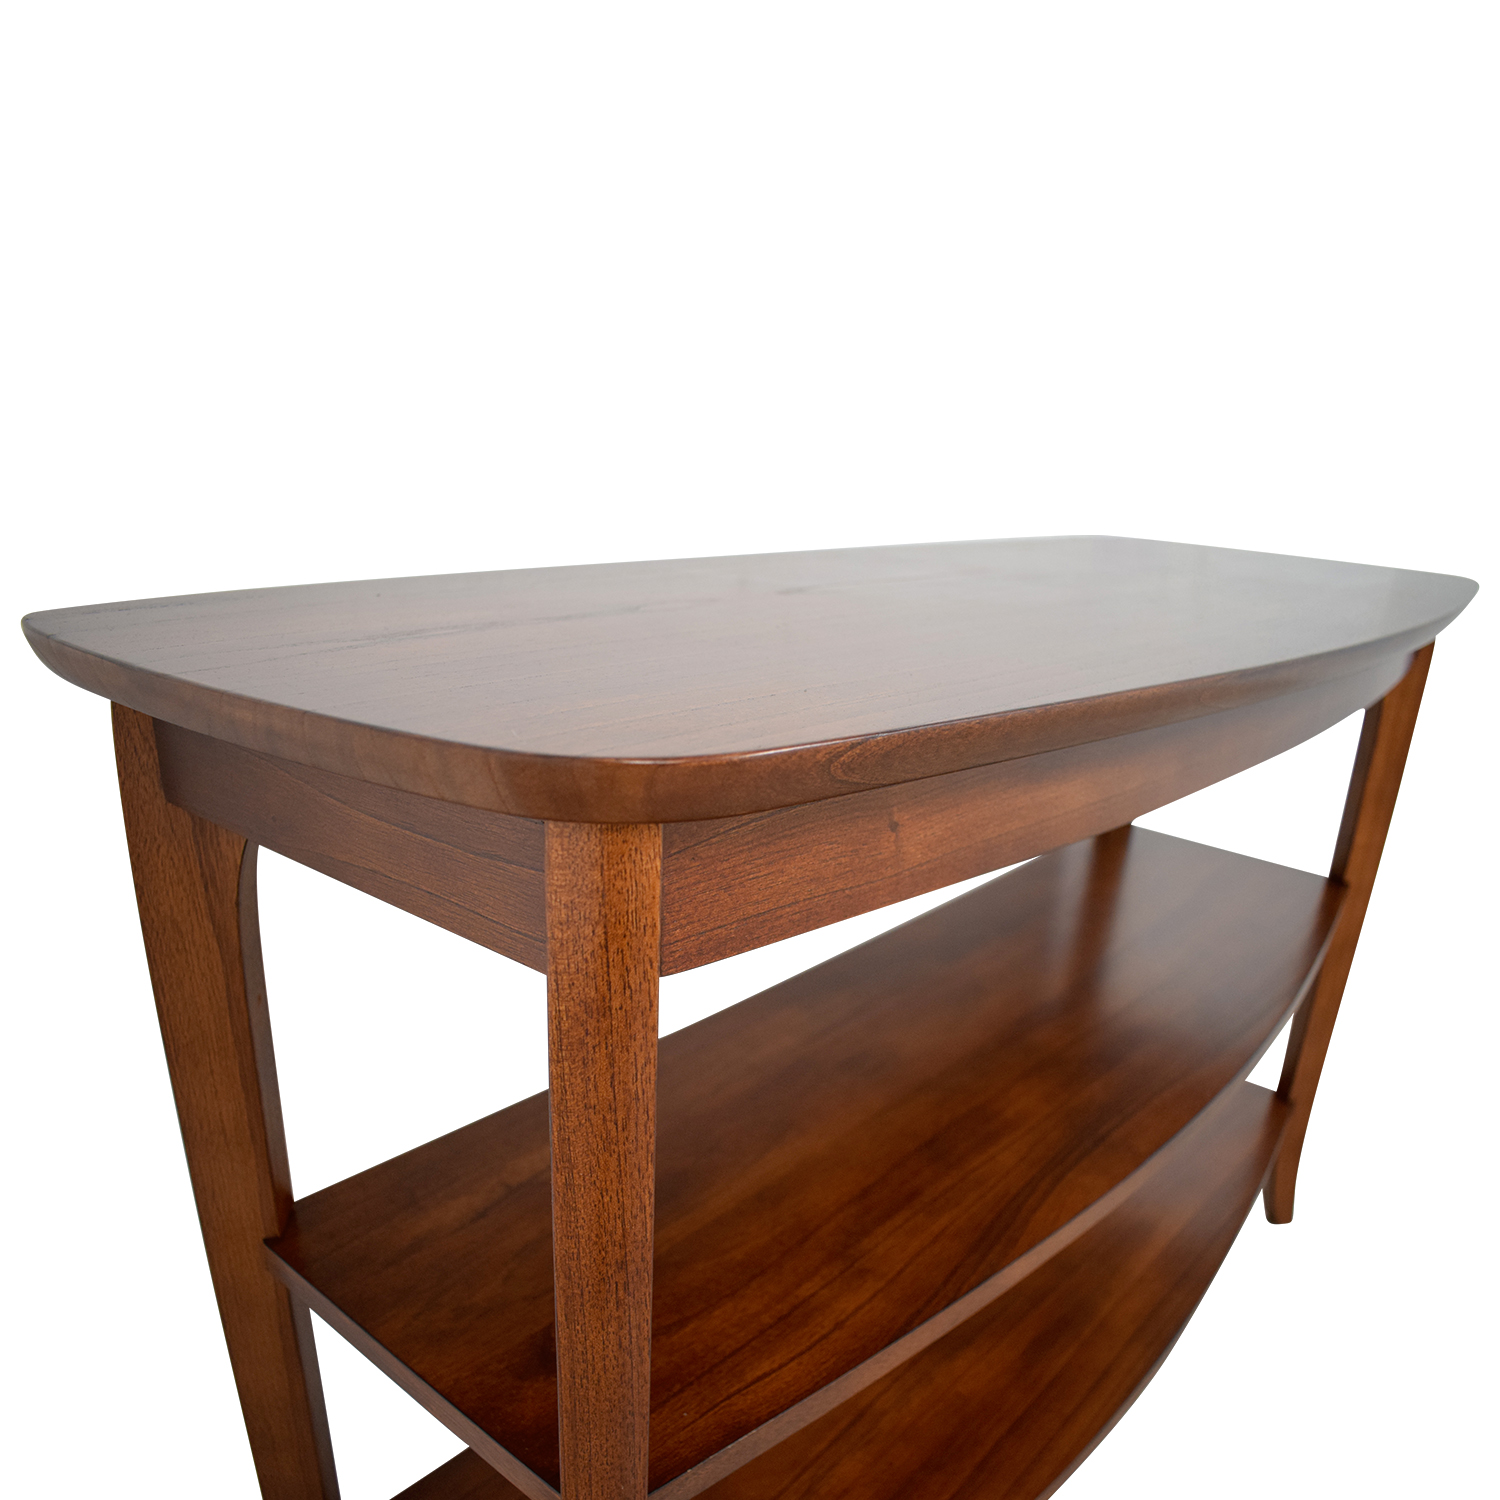 Wondrous 77 Off Pottery Barn Pottery Barn Chloe Wood Console Storage Machost Co Dining Chair Design Ideas Machostcouk